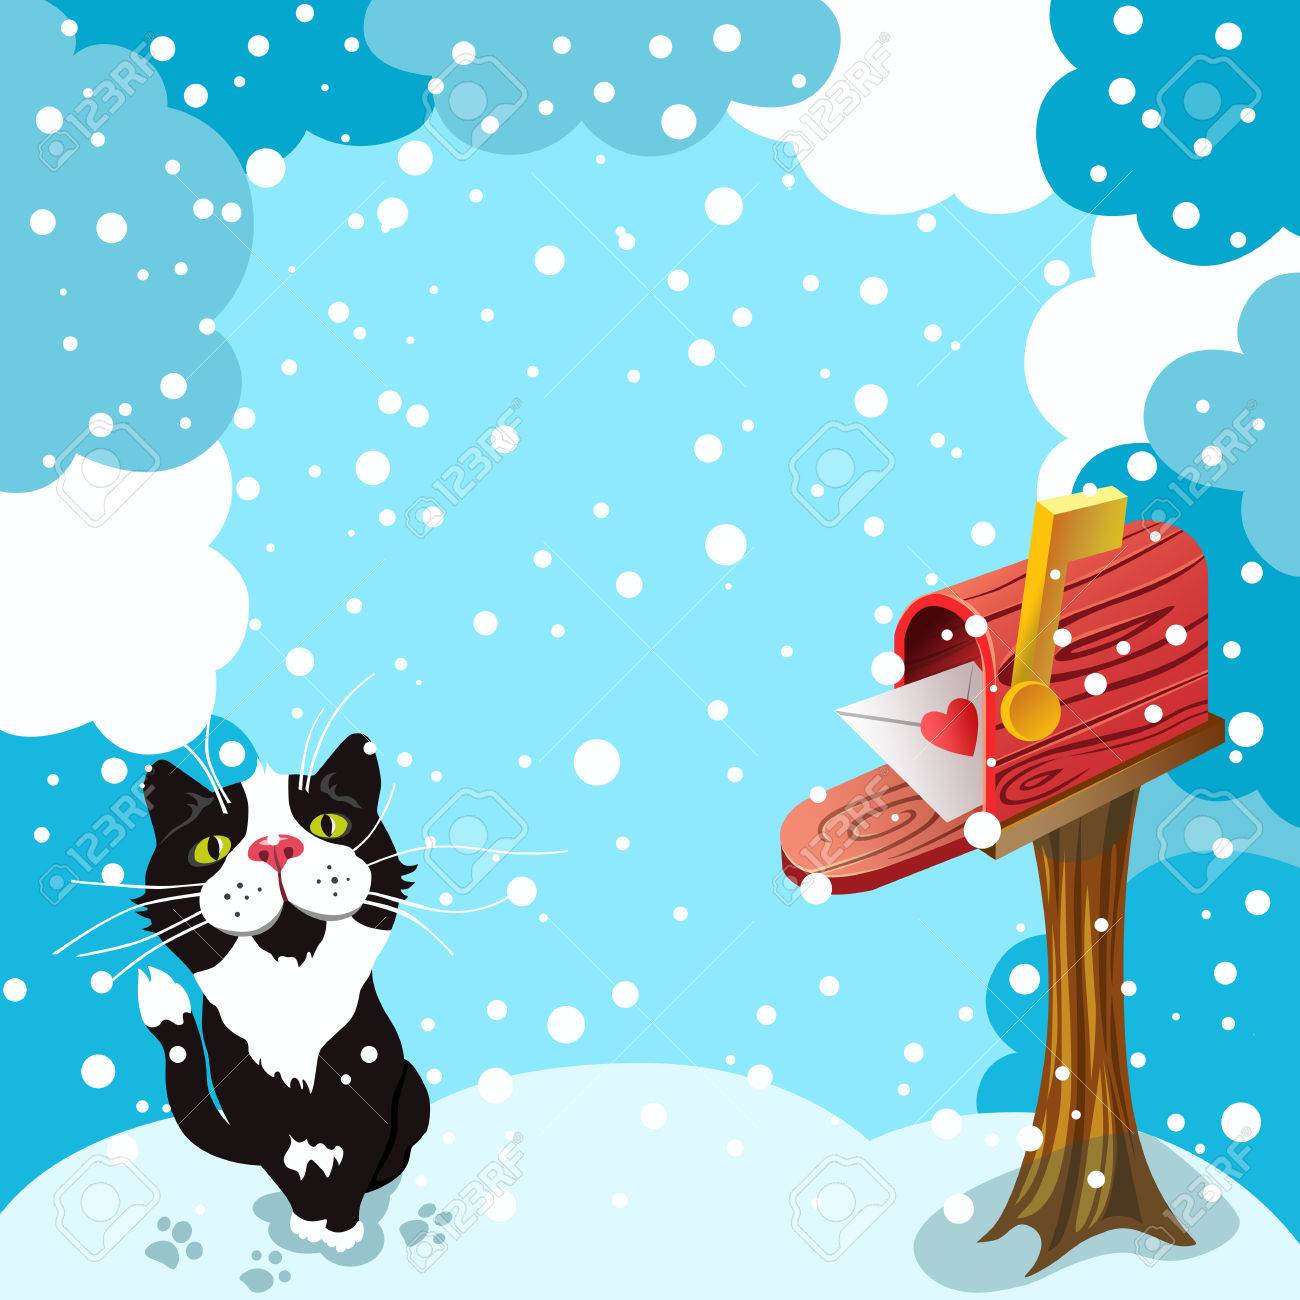 Christmas Greeting Card UNUSED VINTAGE White Kitten Cat Mail Box Presents Snow